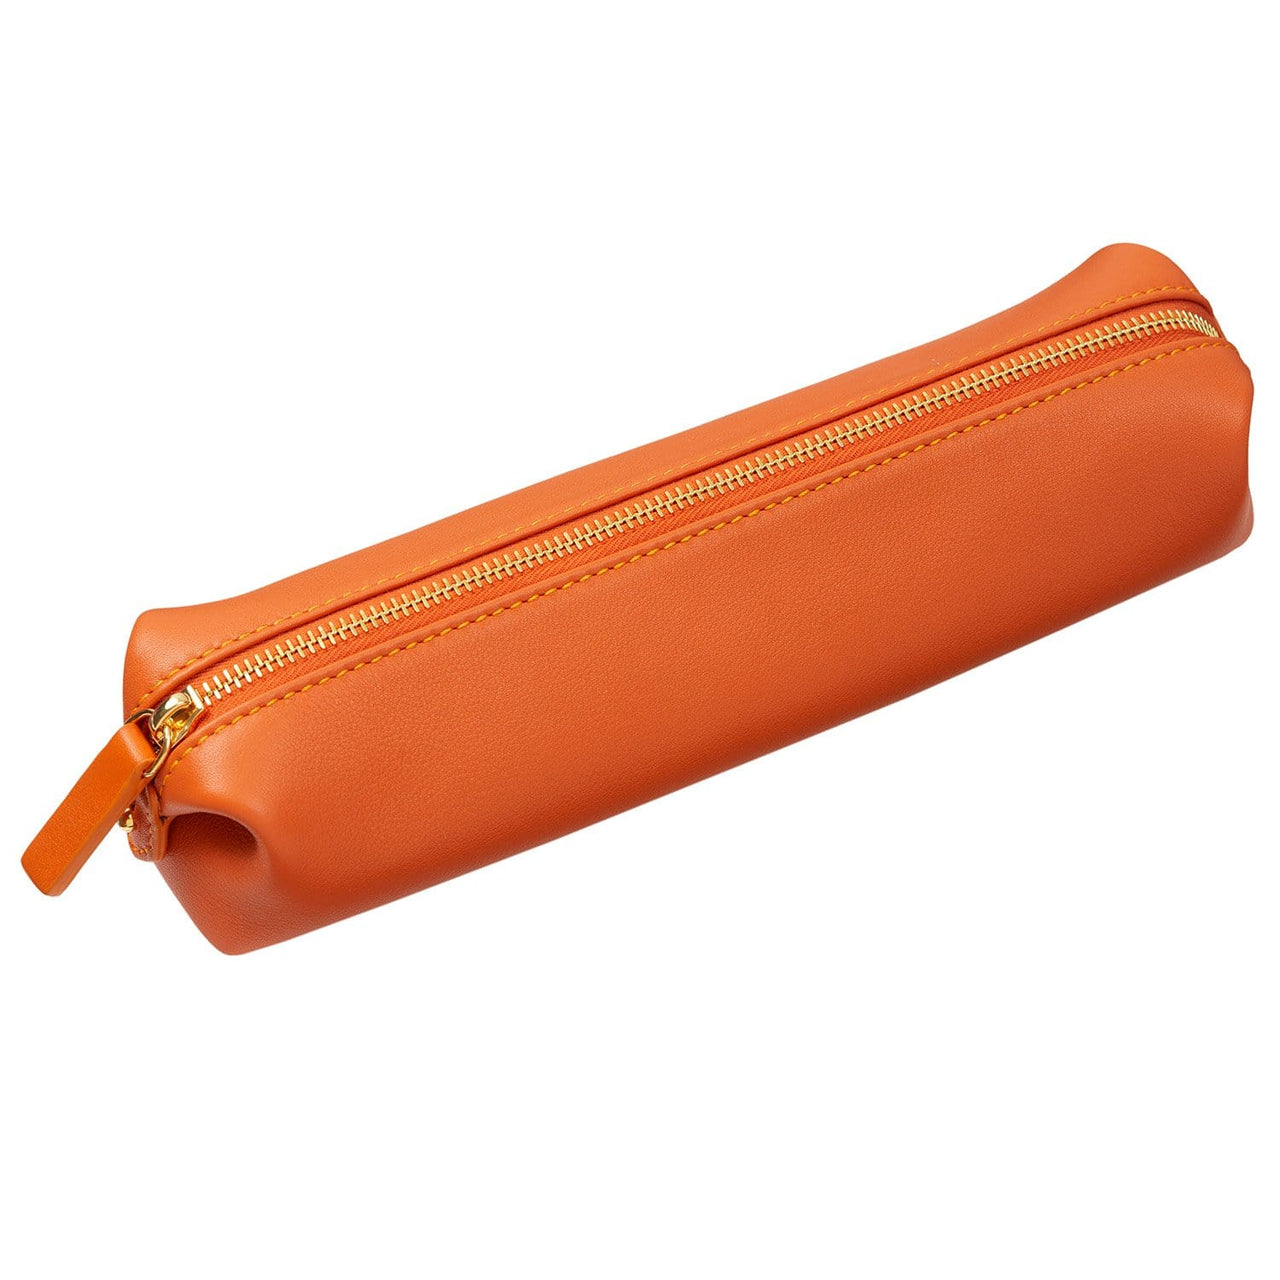 STOW Documents Cases & Folios Amber Orange & Beige Leather Pencil Case